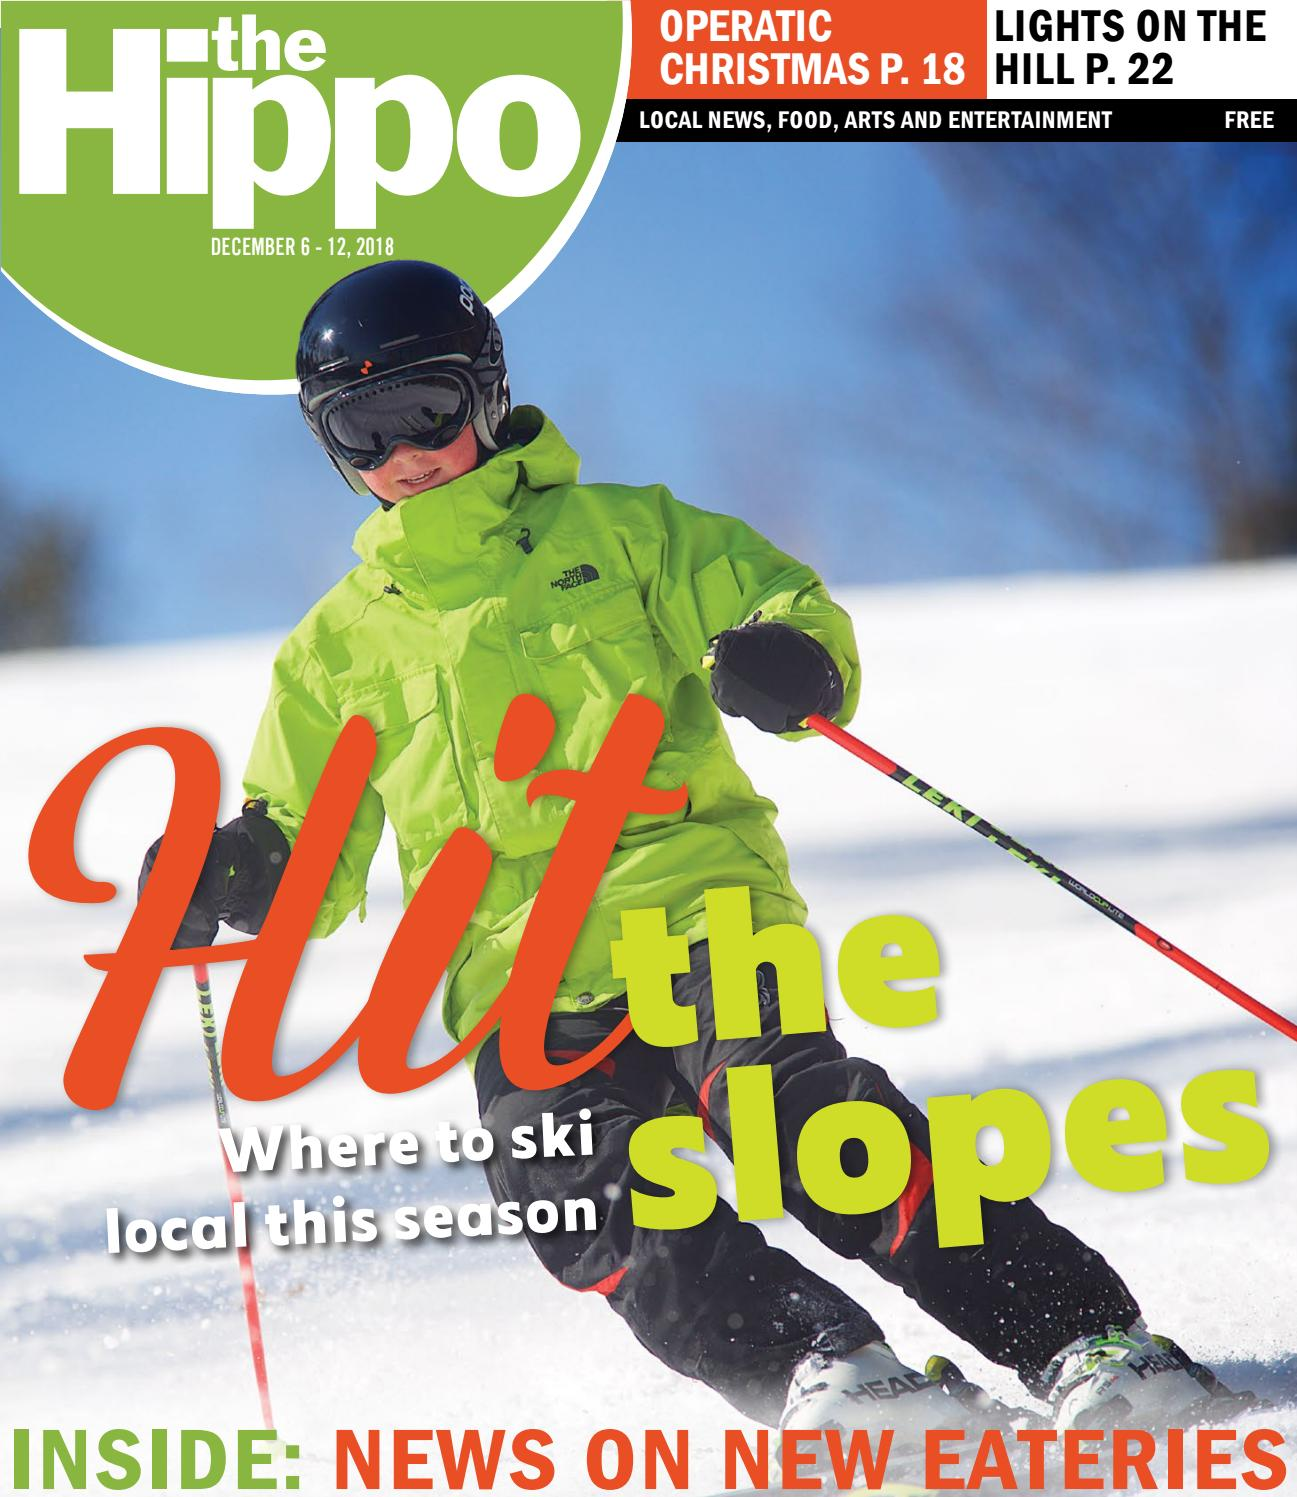 Hippo 12-6-18 by The Hippo - issuu